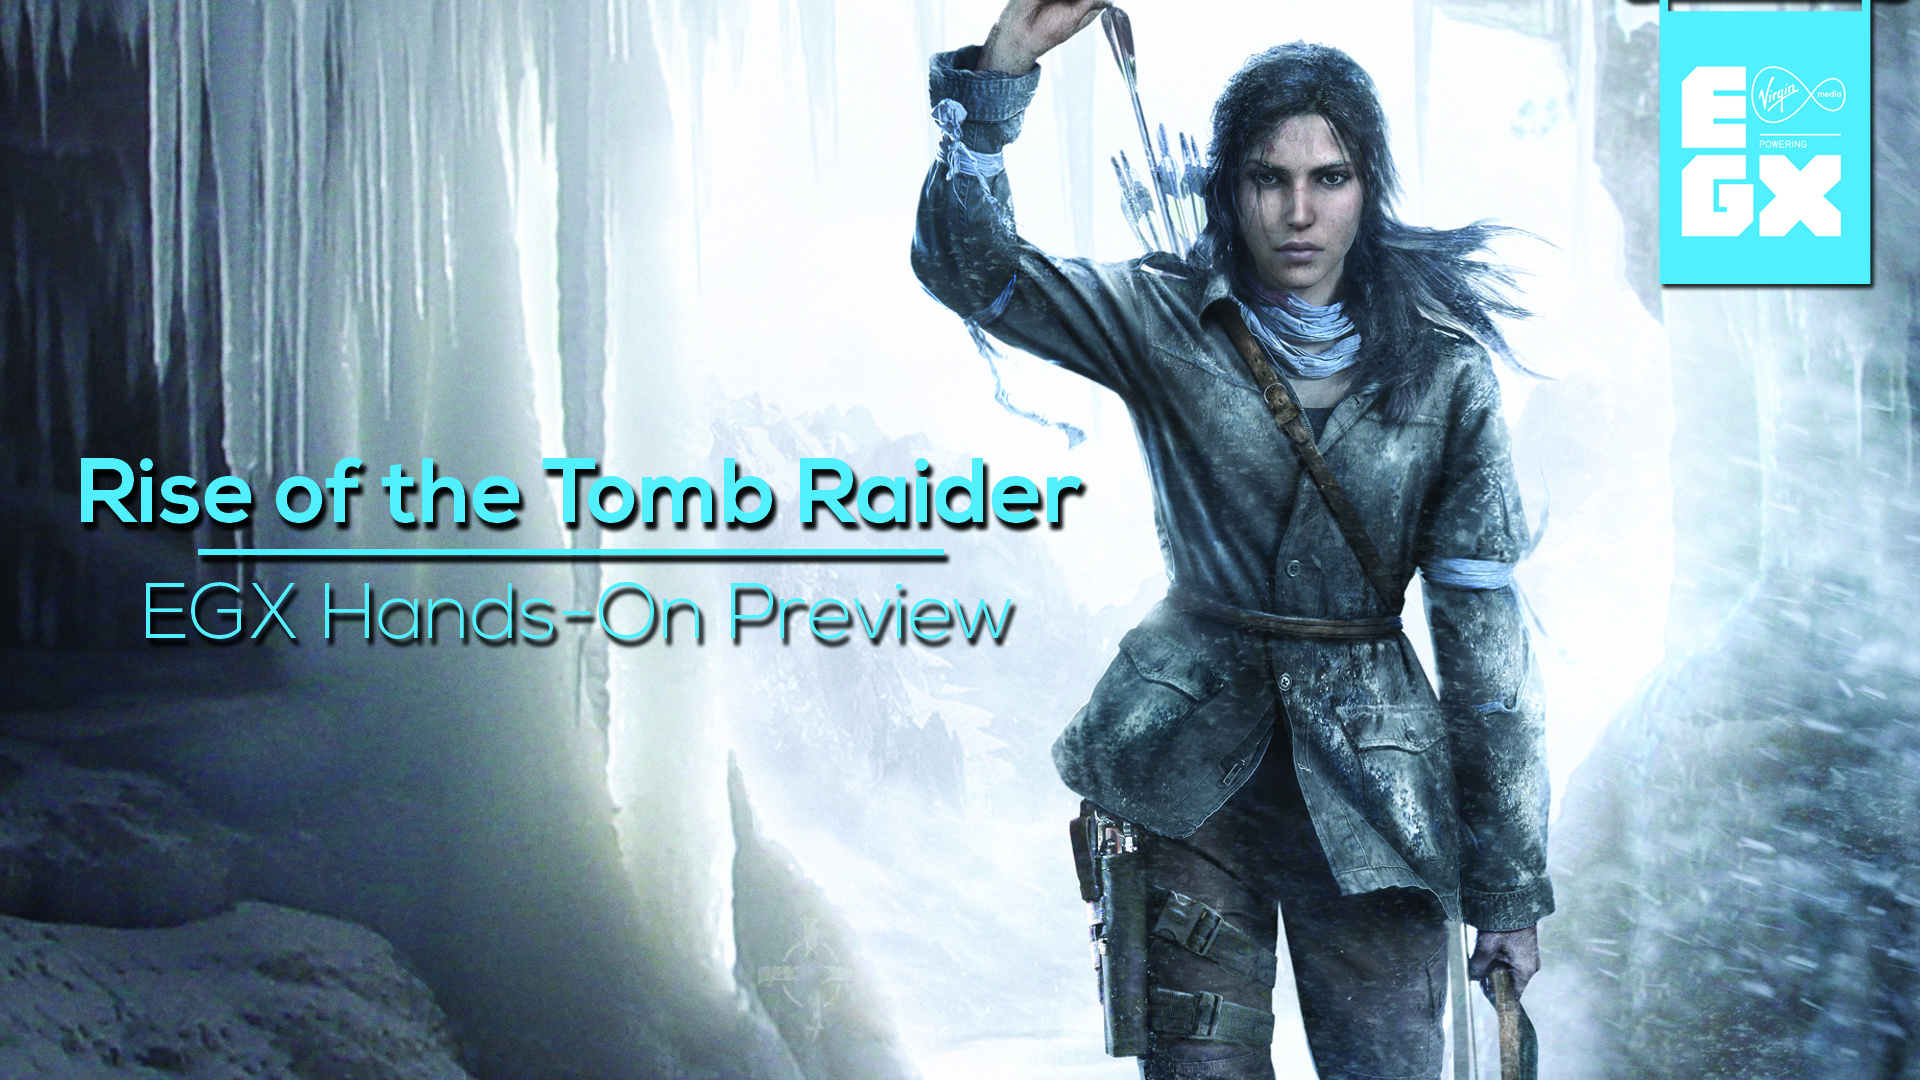 Rise of the Tomb Raider (Hands-On Preview)